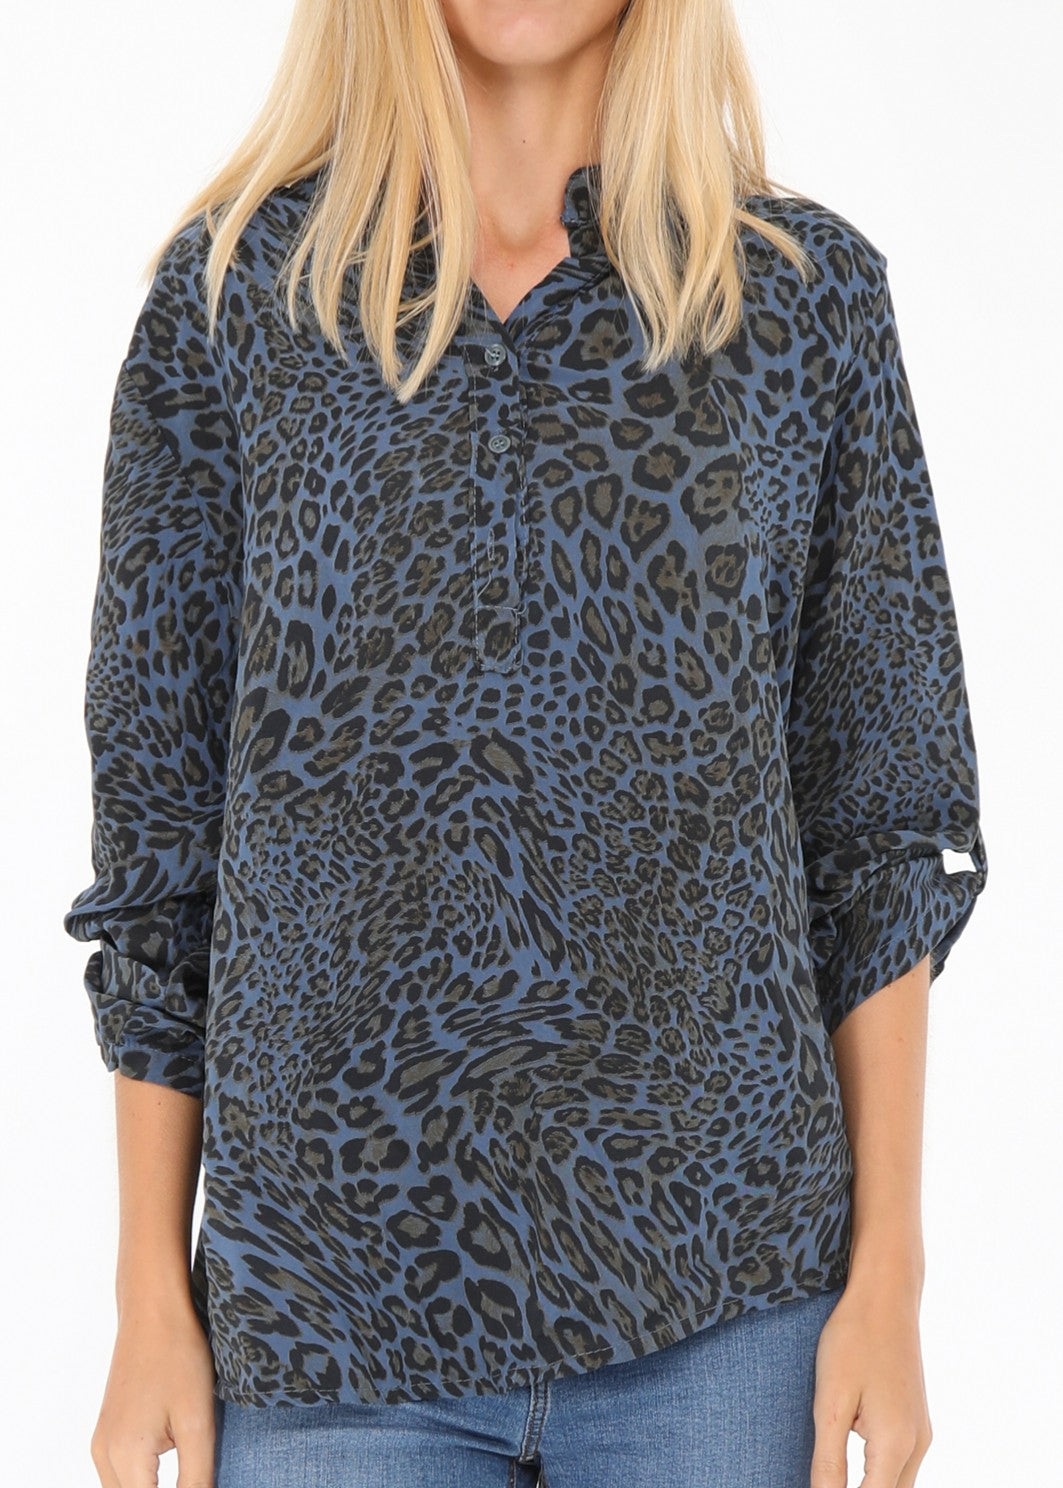 JOLIE  - Animal Print Shirt - Navy